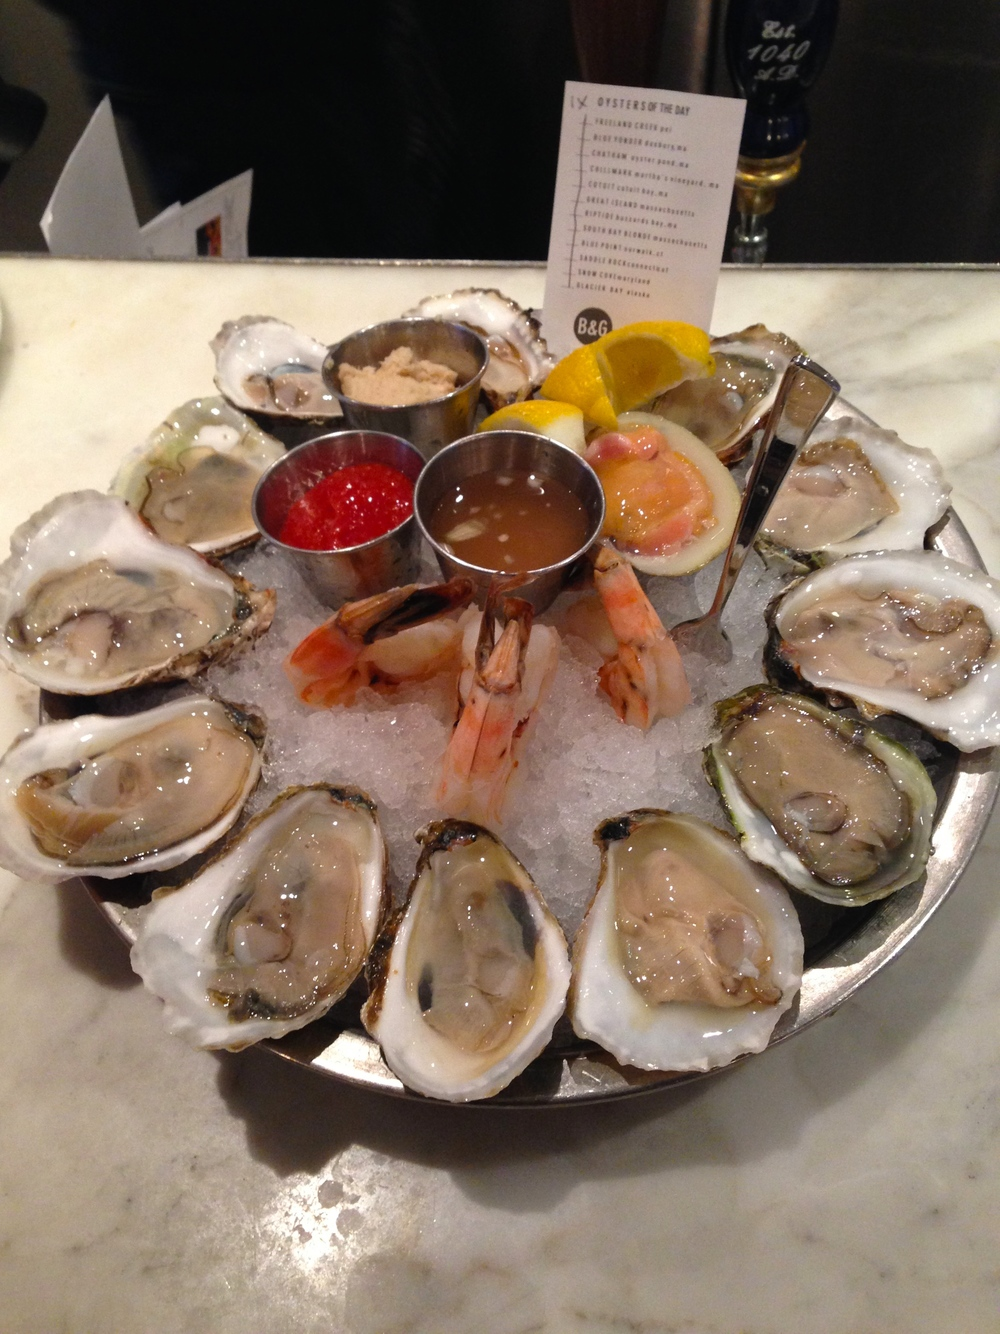 Oysters, Shrimp, and Clams at B&G Oysters, Boston